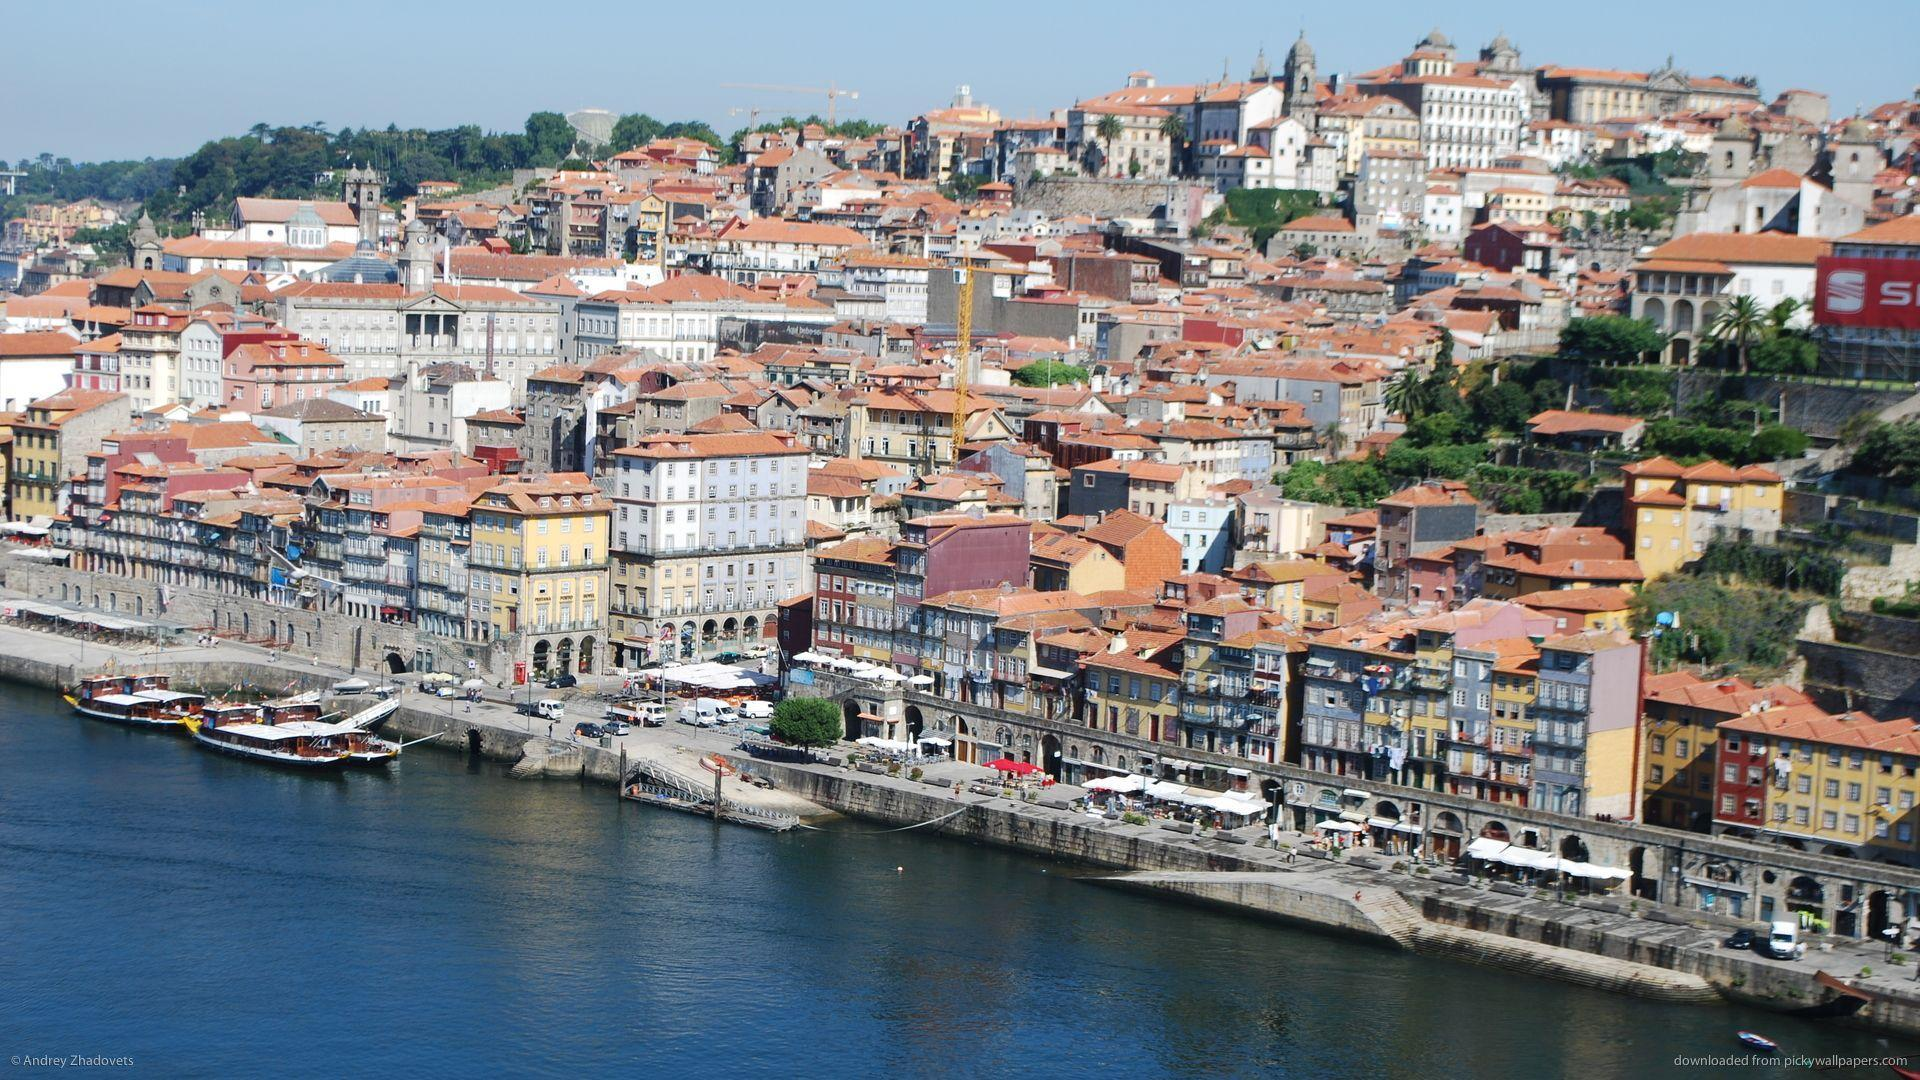 Download 1920x1080 Porto Wallpapers